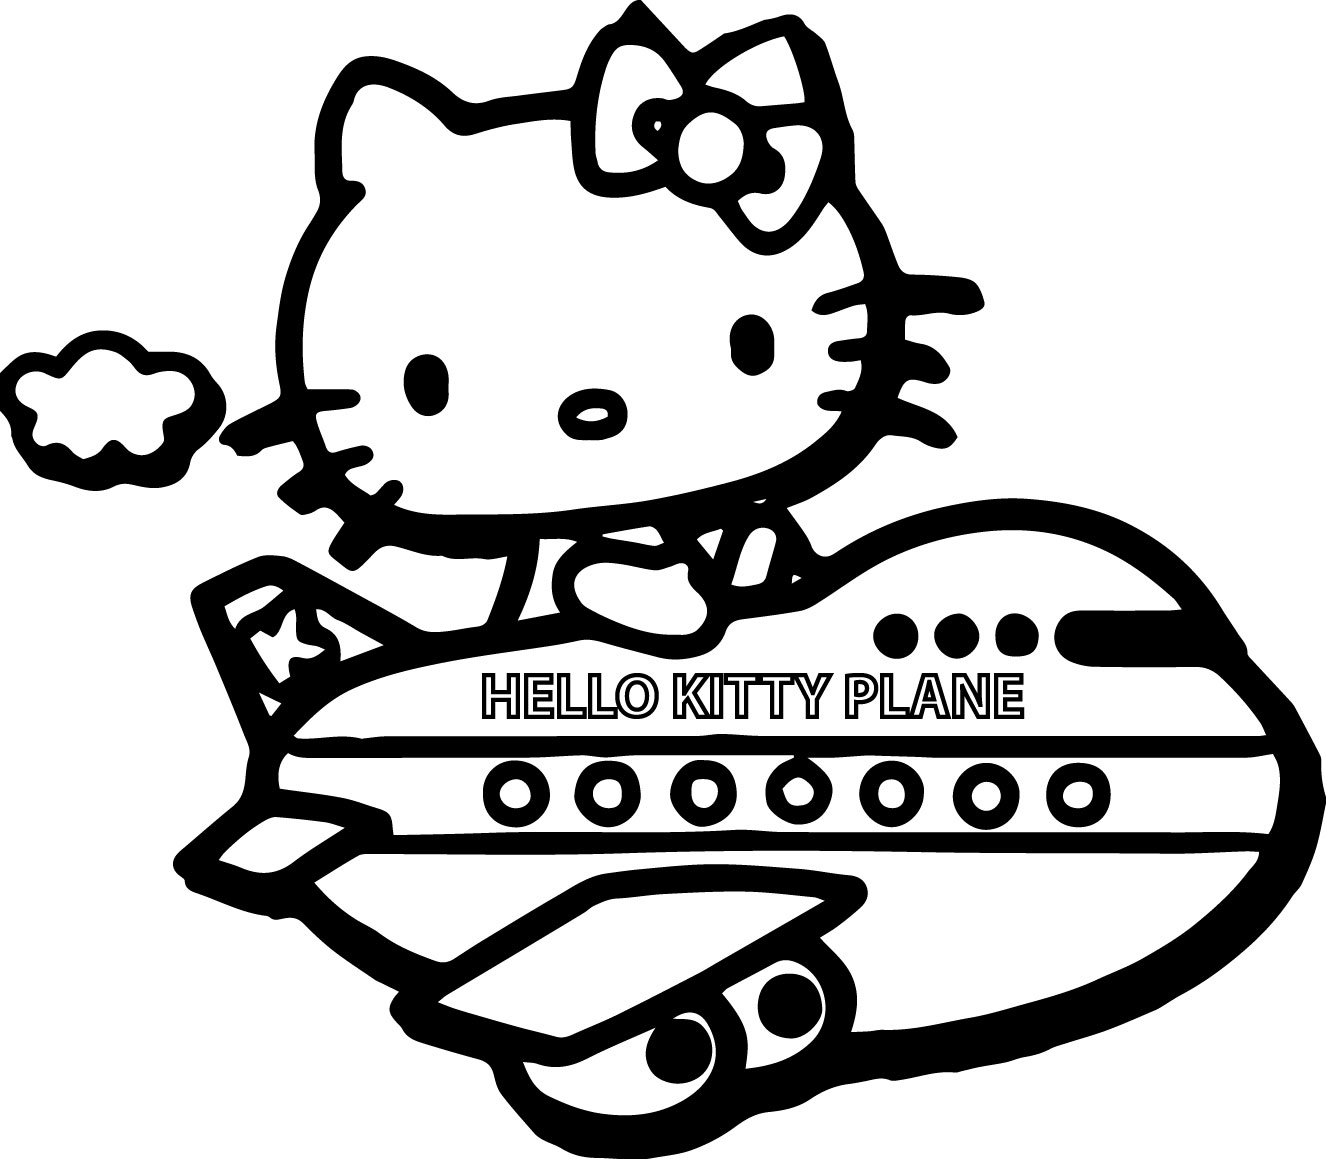 hello kitty fly plane coloring page wecoloringpage